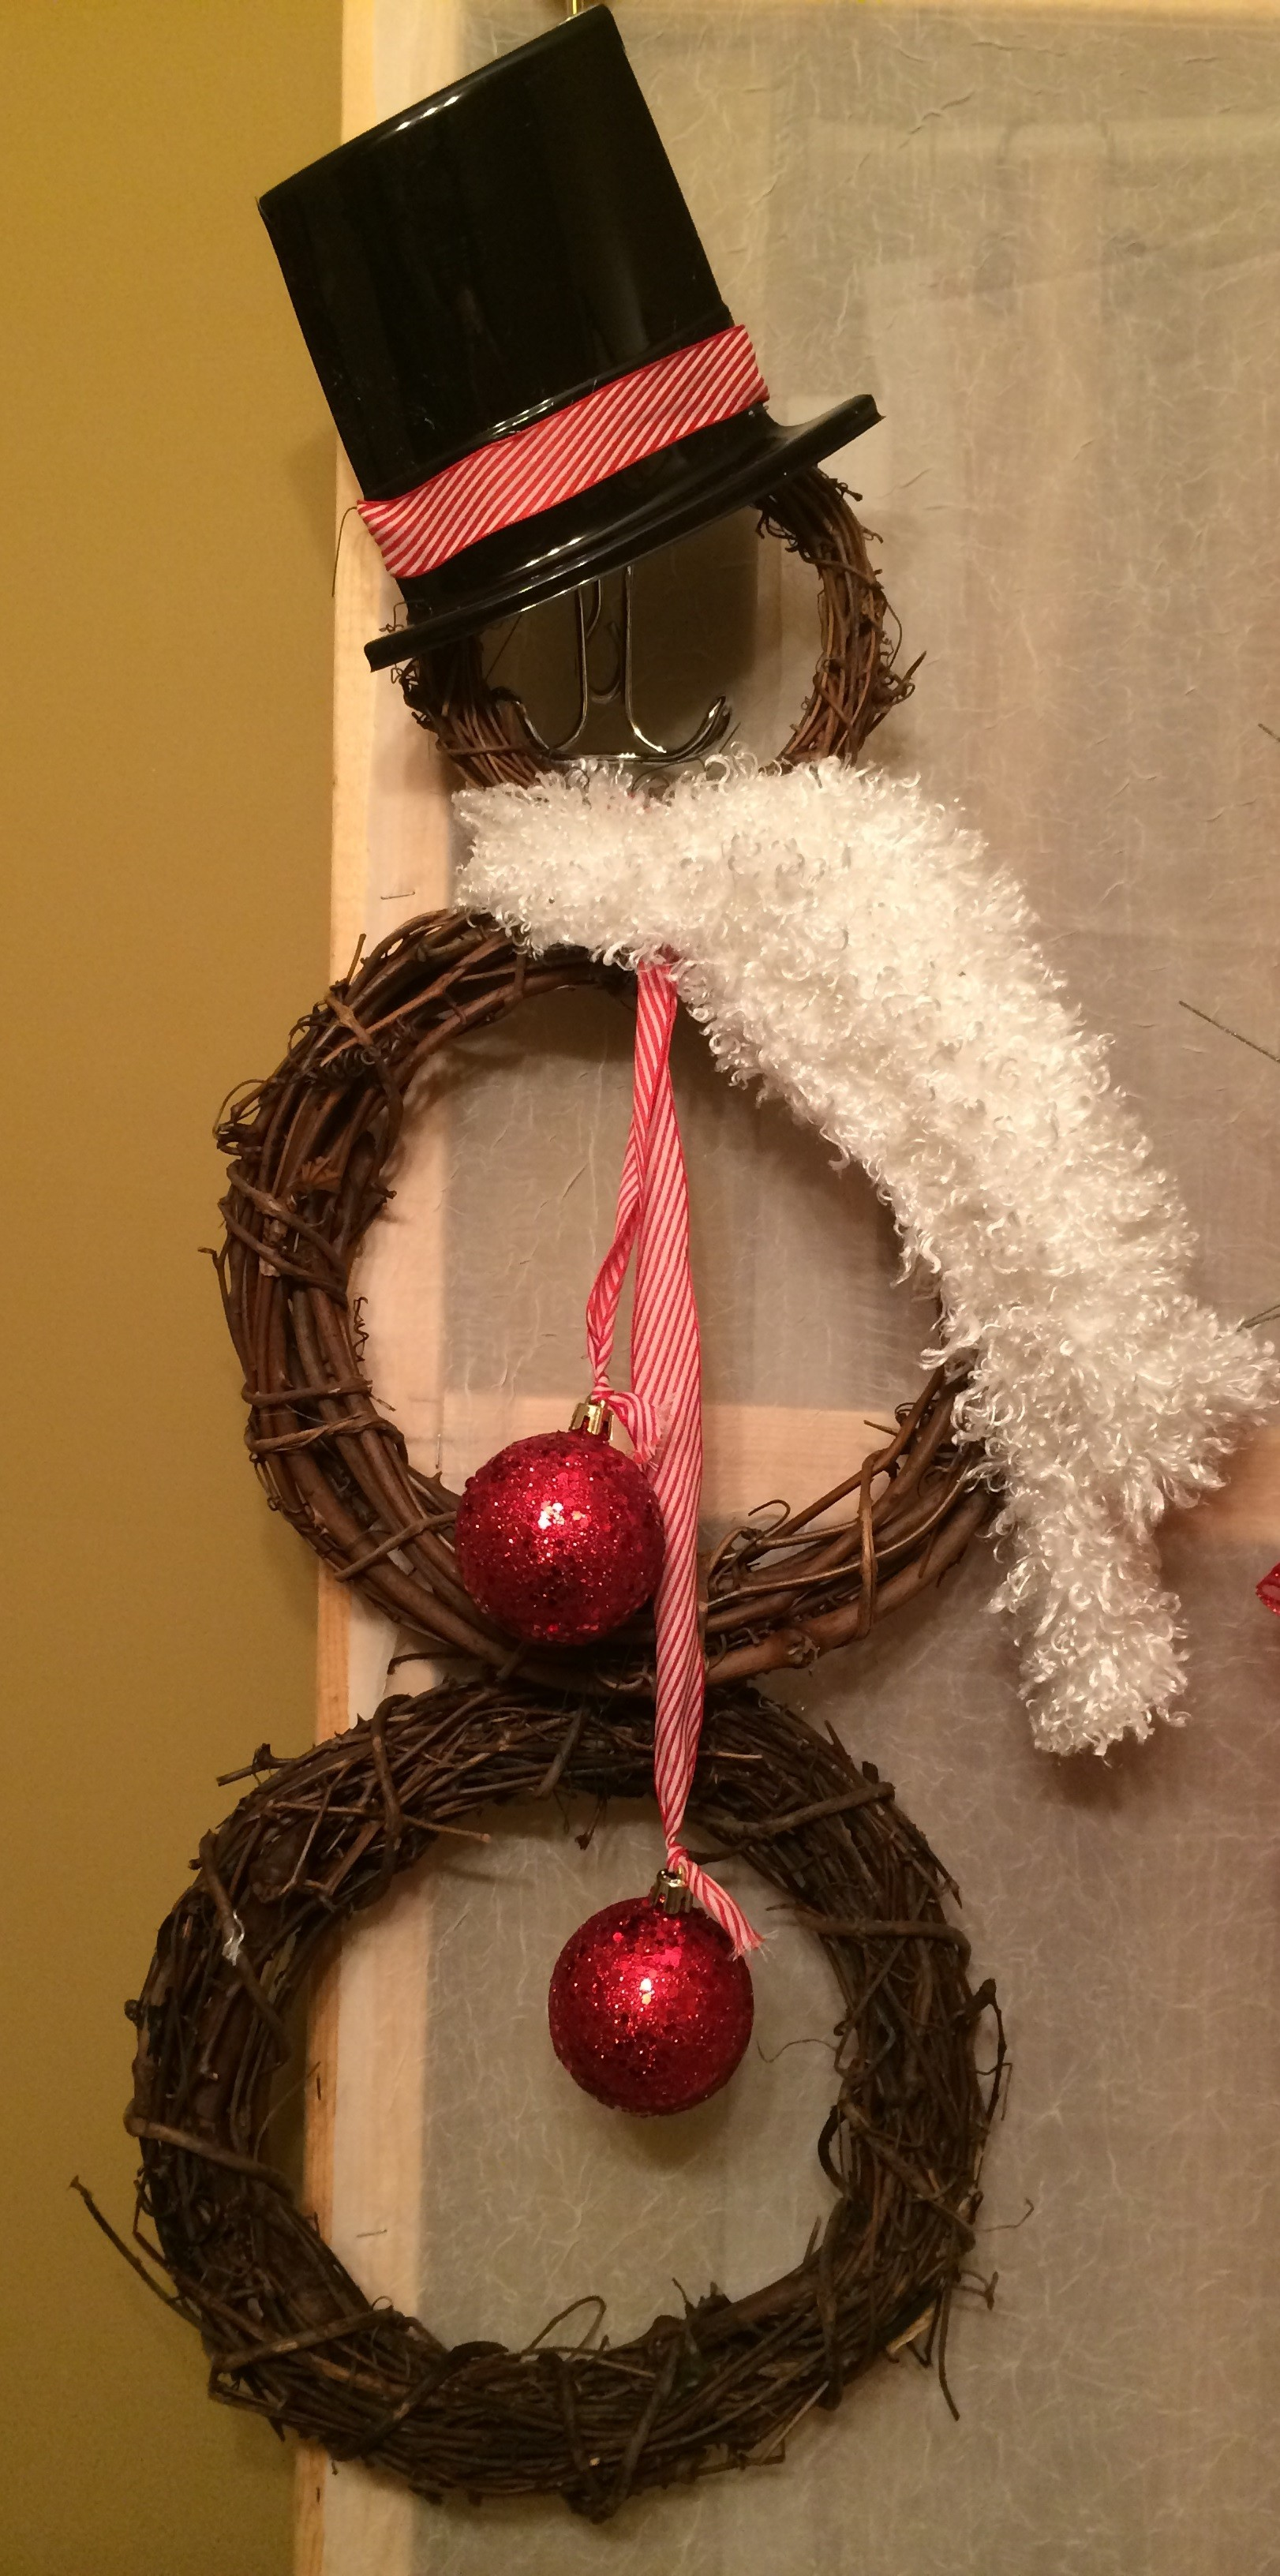 Thank you for including my cork and pencil wreath in your wreath round-up. And thanks for all the awesome wreath ideas. Have a great week!